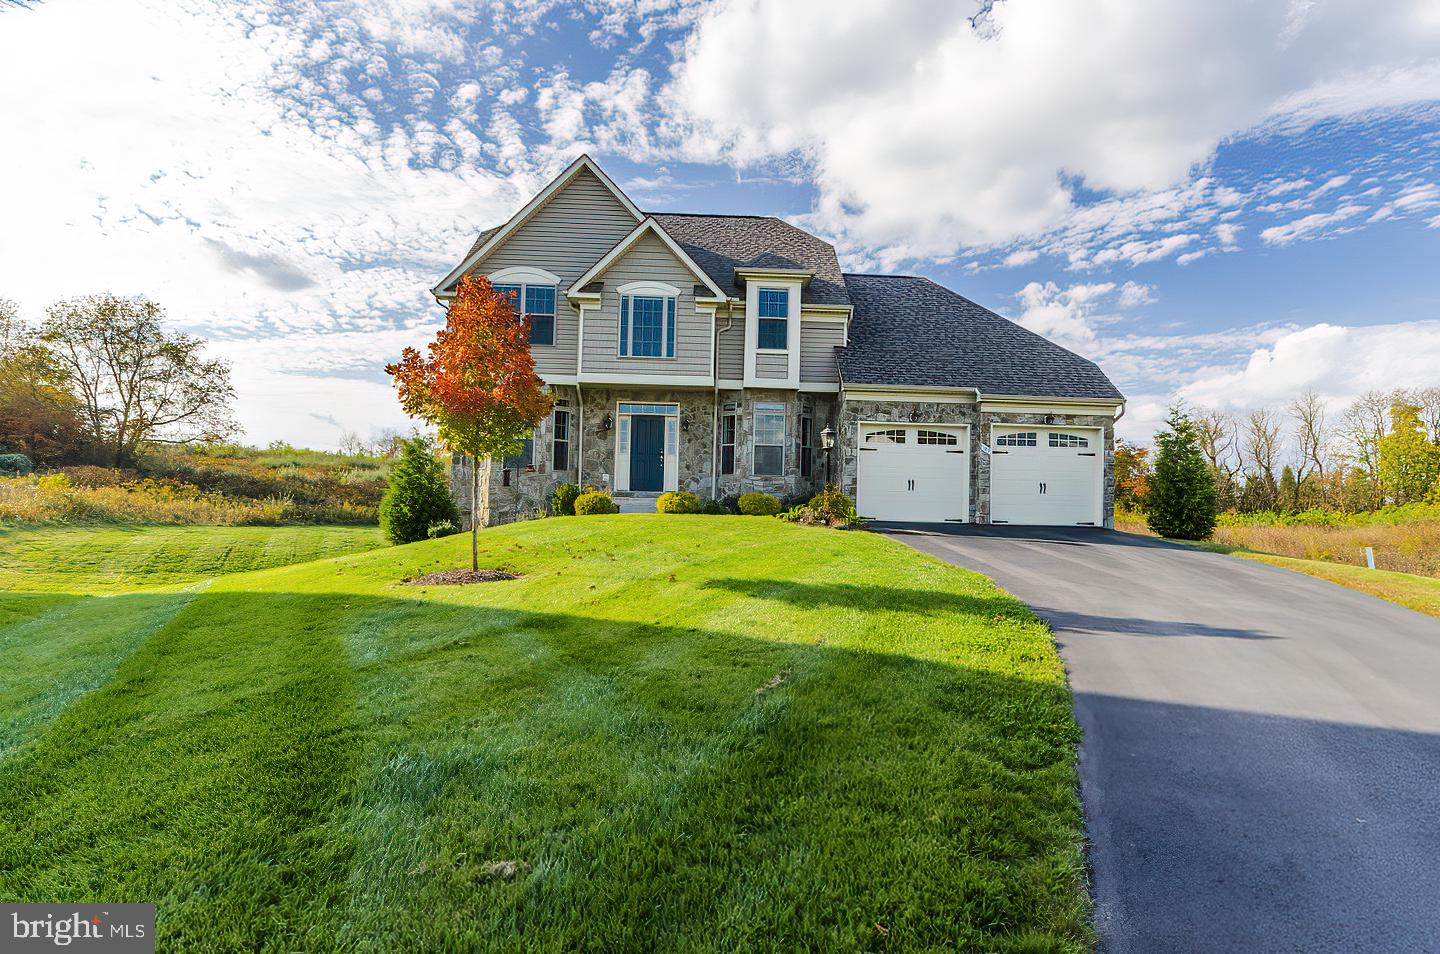 Gorgeous home in Beallair!  The HOA dues include general lawn care such as mowing, weed treatments,